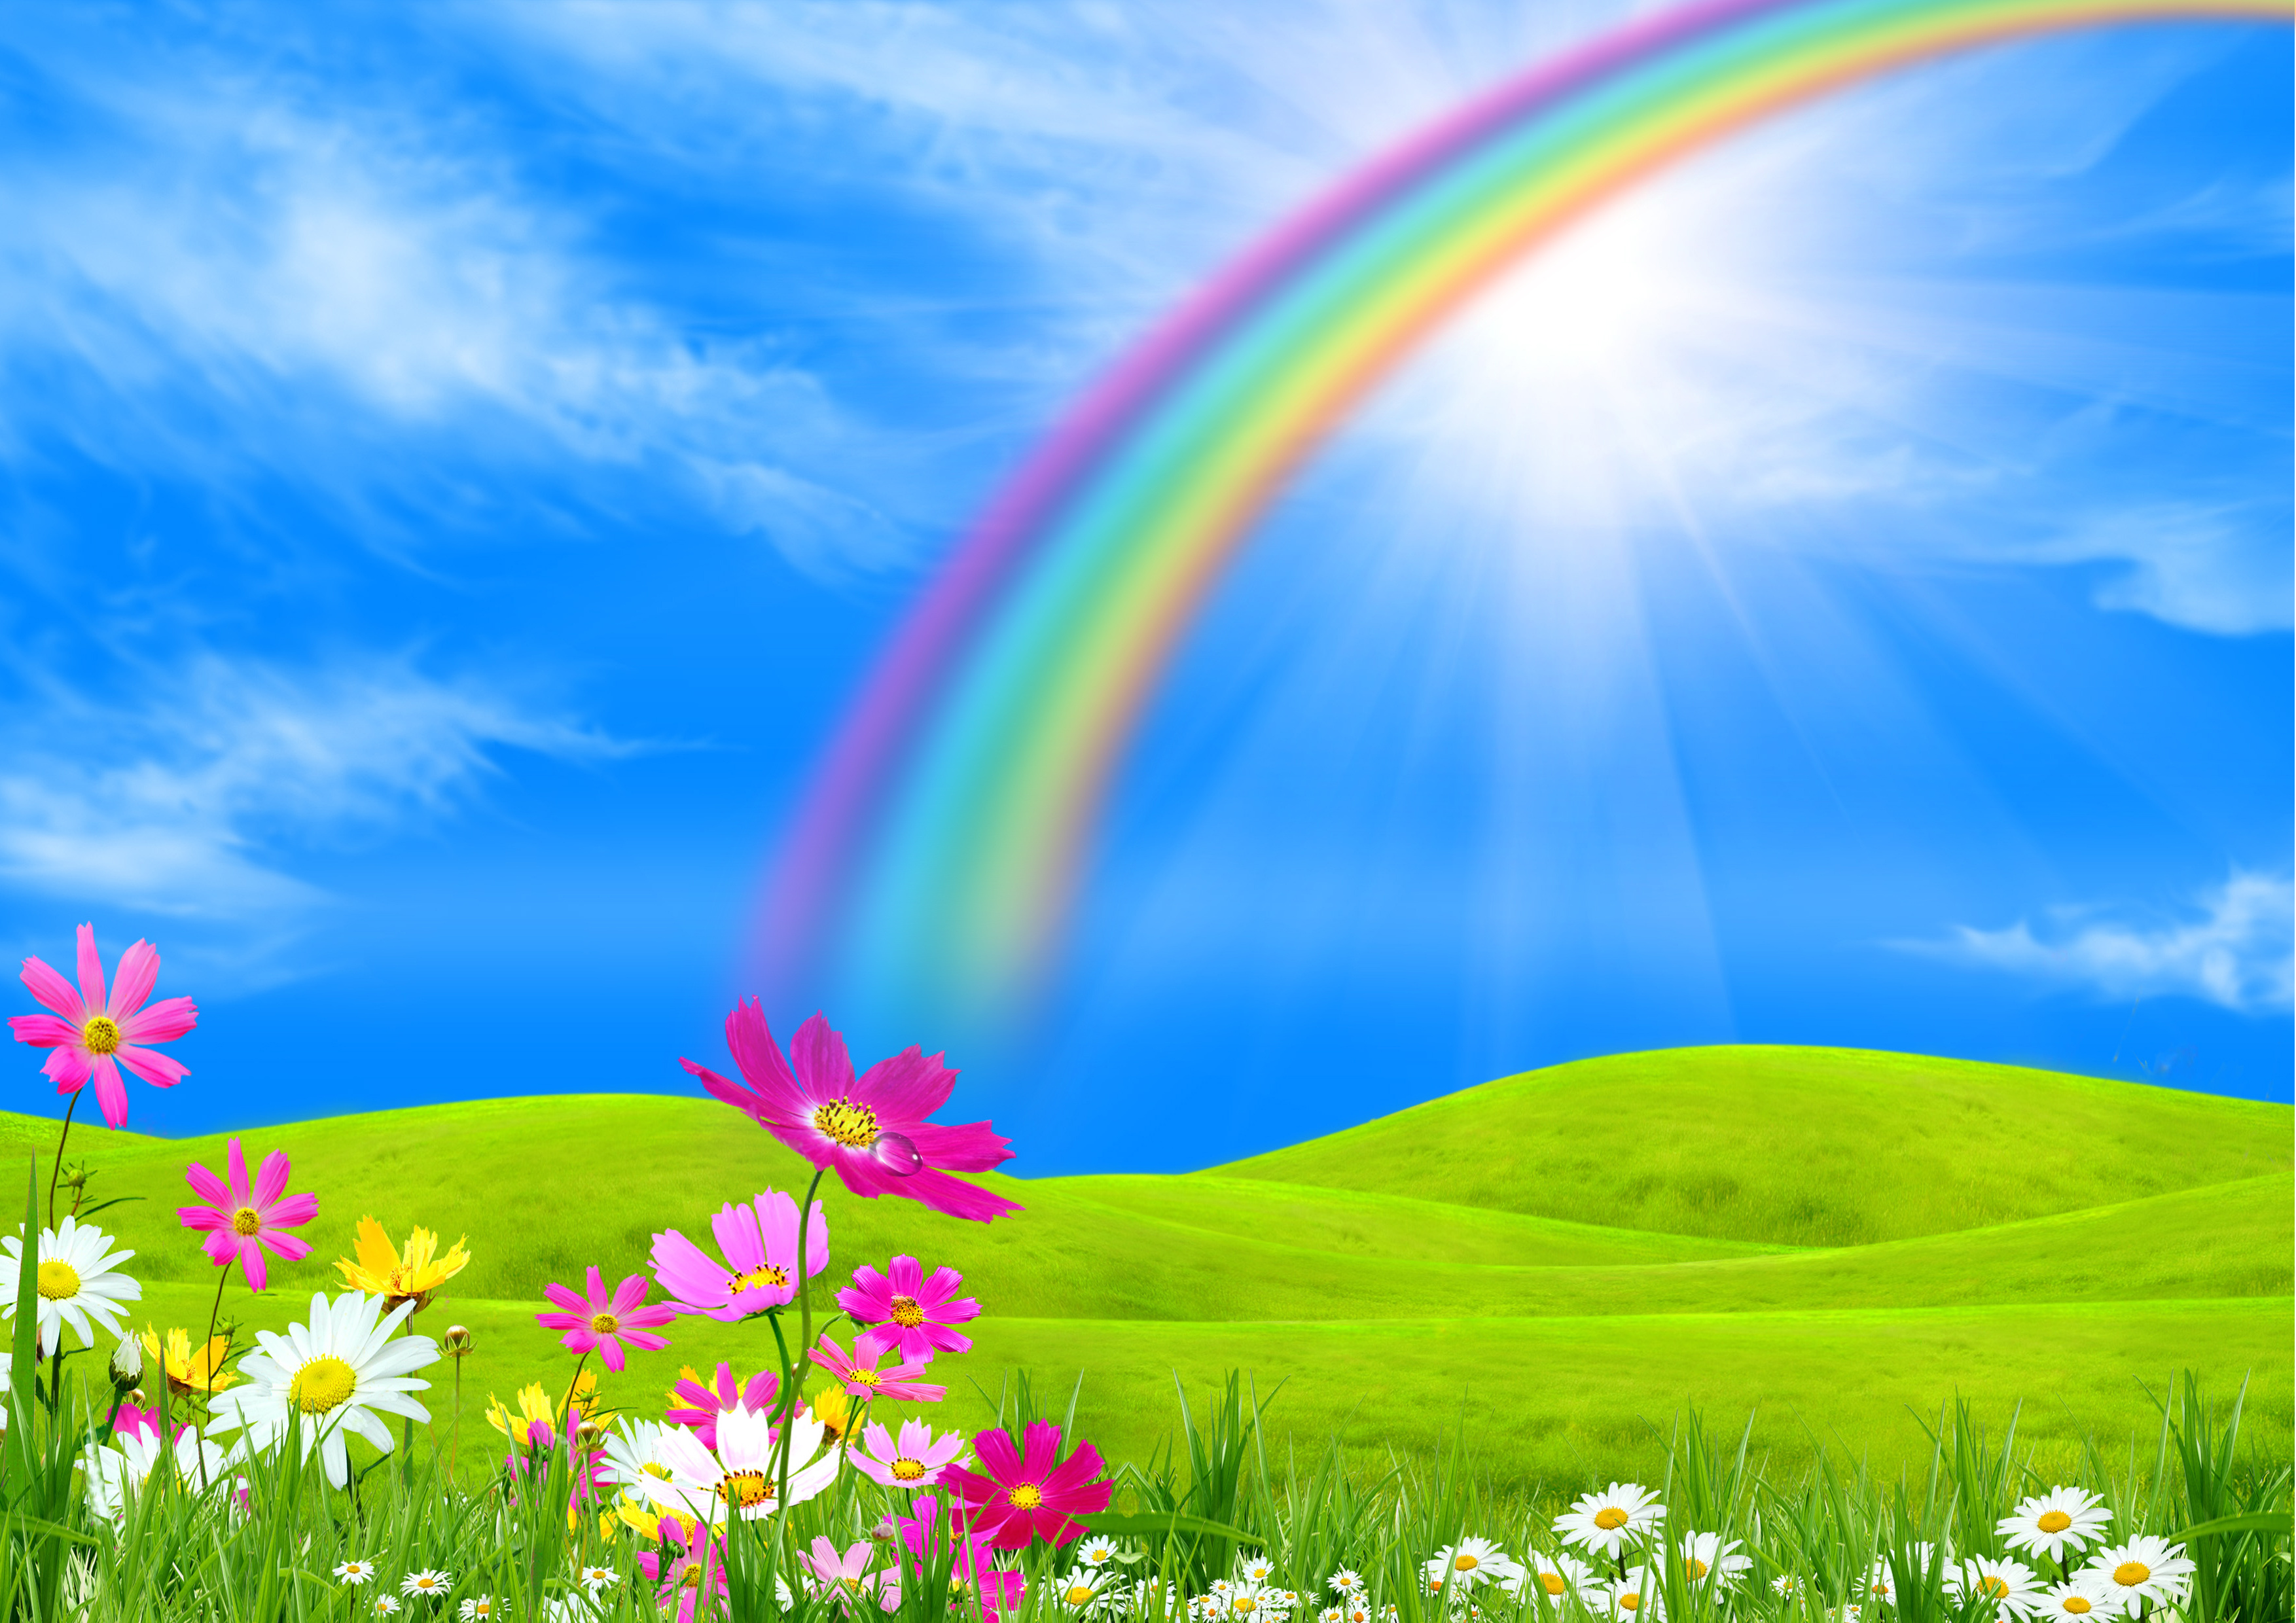 Nature with rainbow clipart wallpaper.